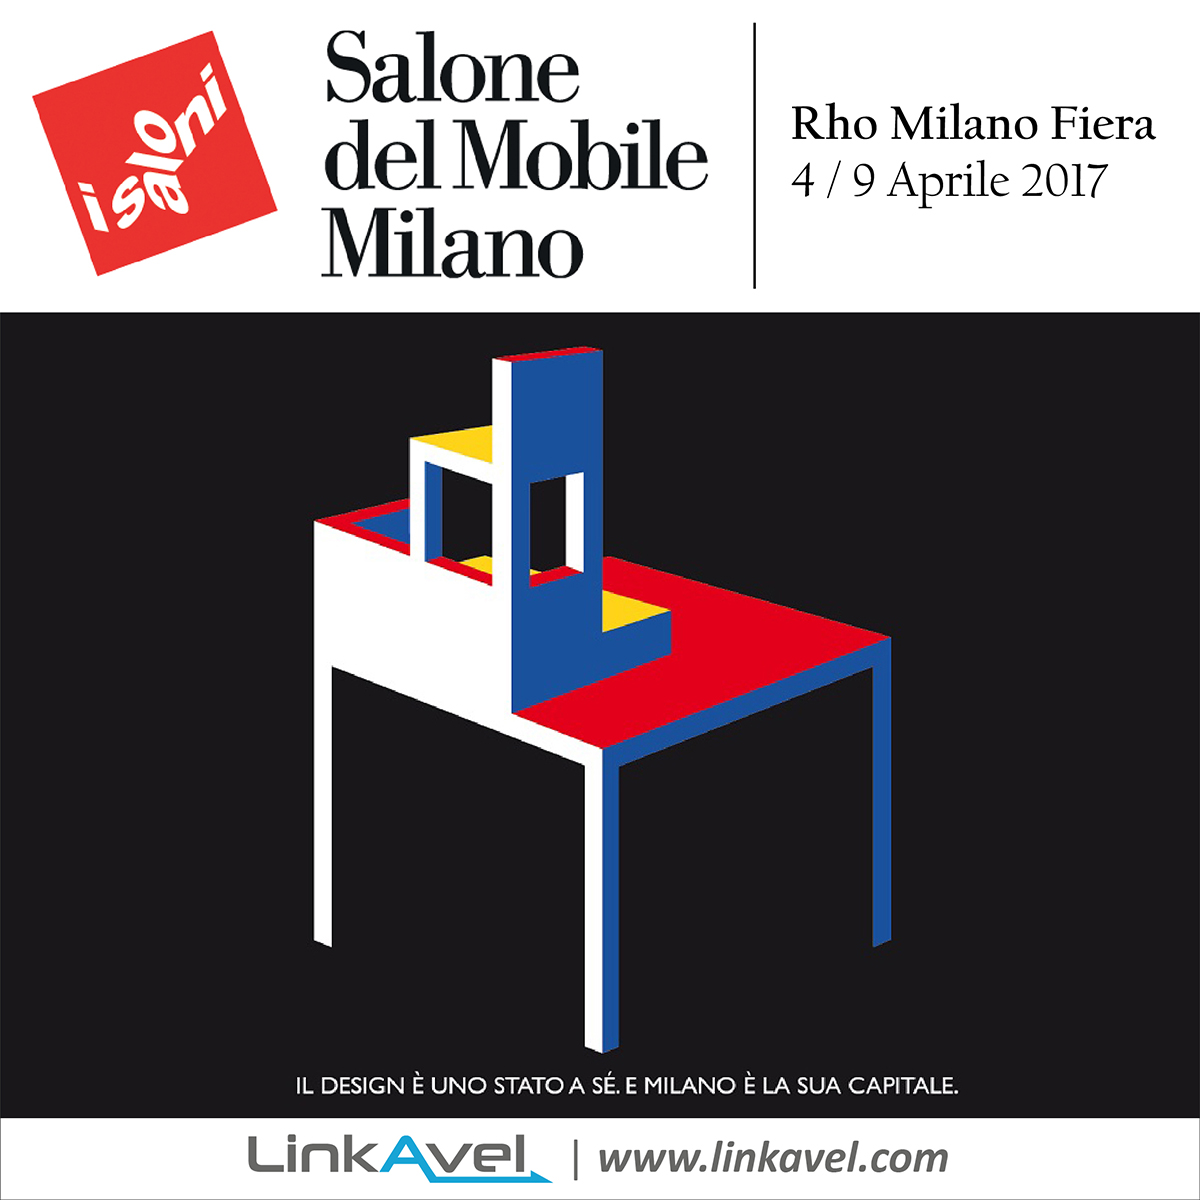 Salone del mobile milano 4 9 aprile 2017 linkavel for Fiera mobile 2017